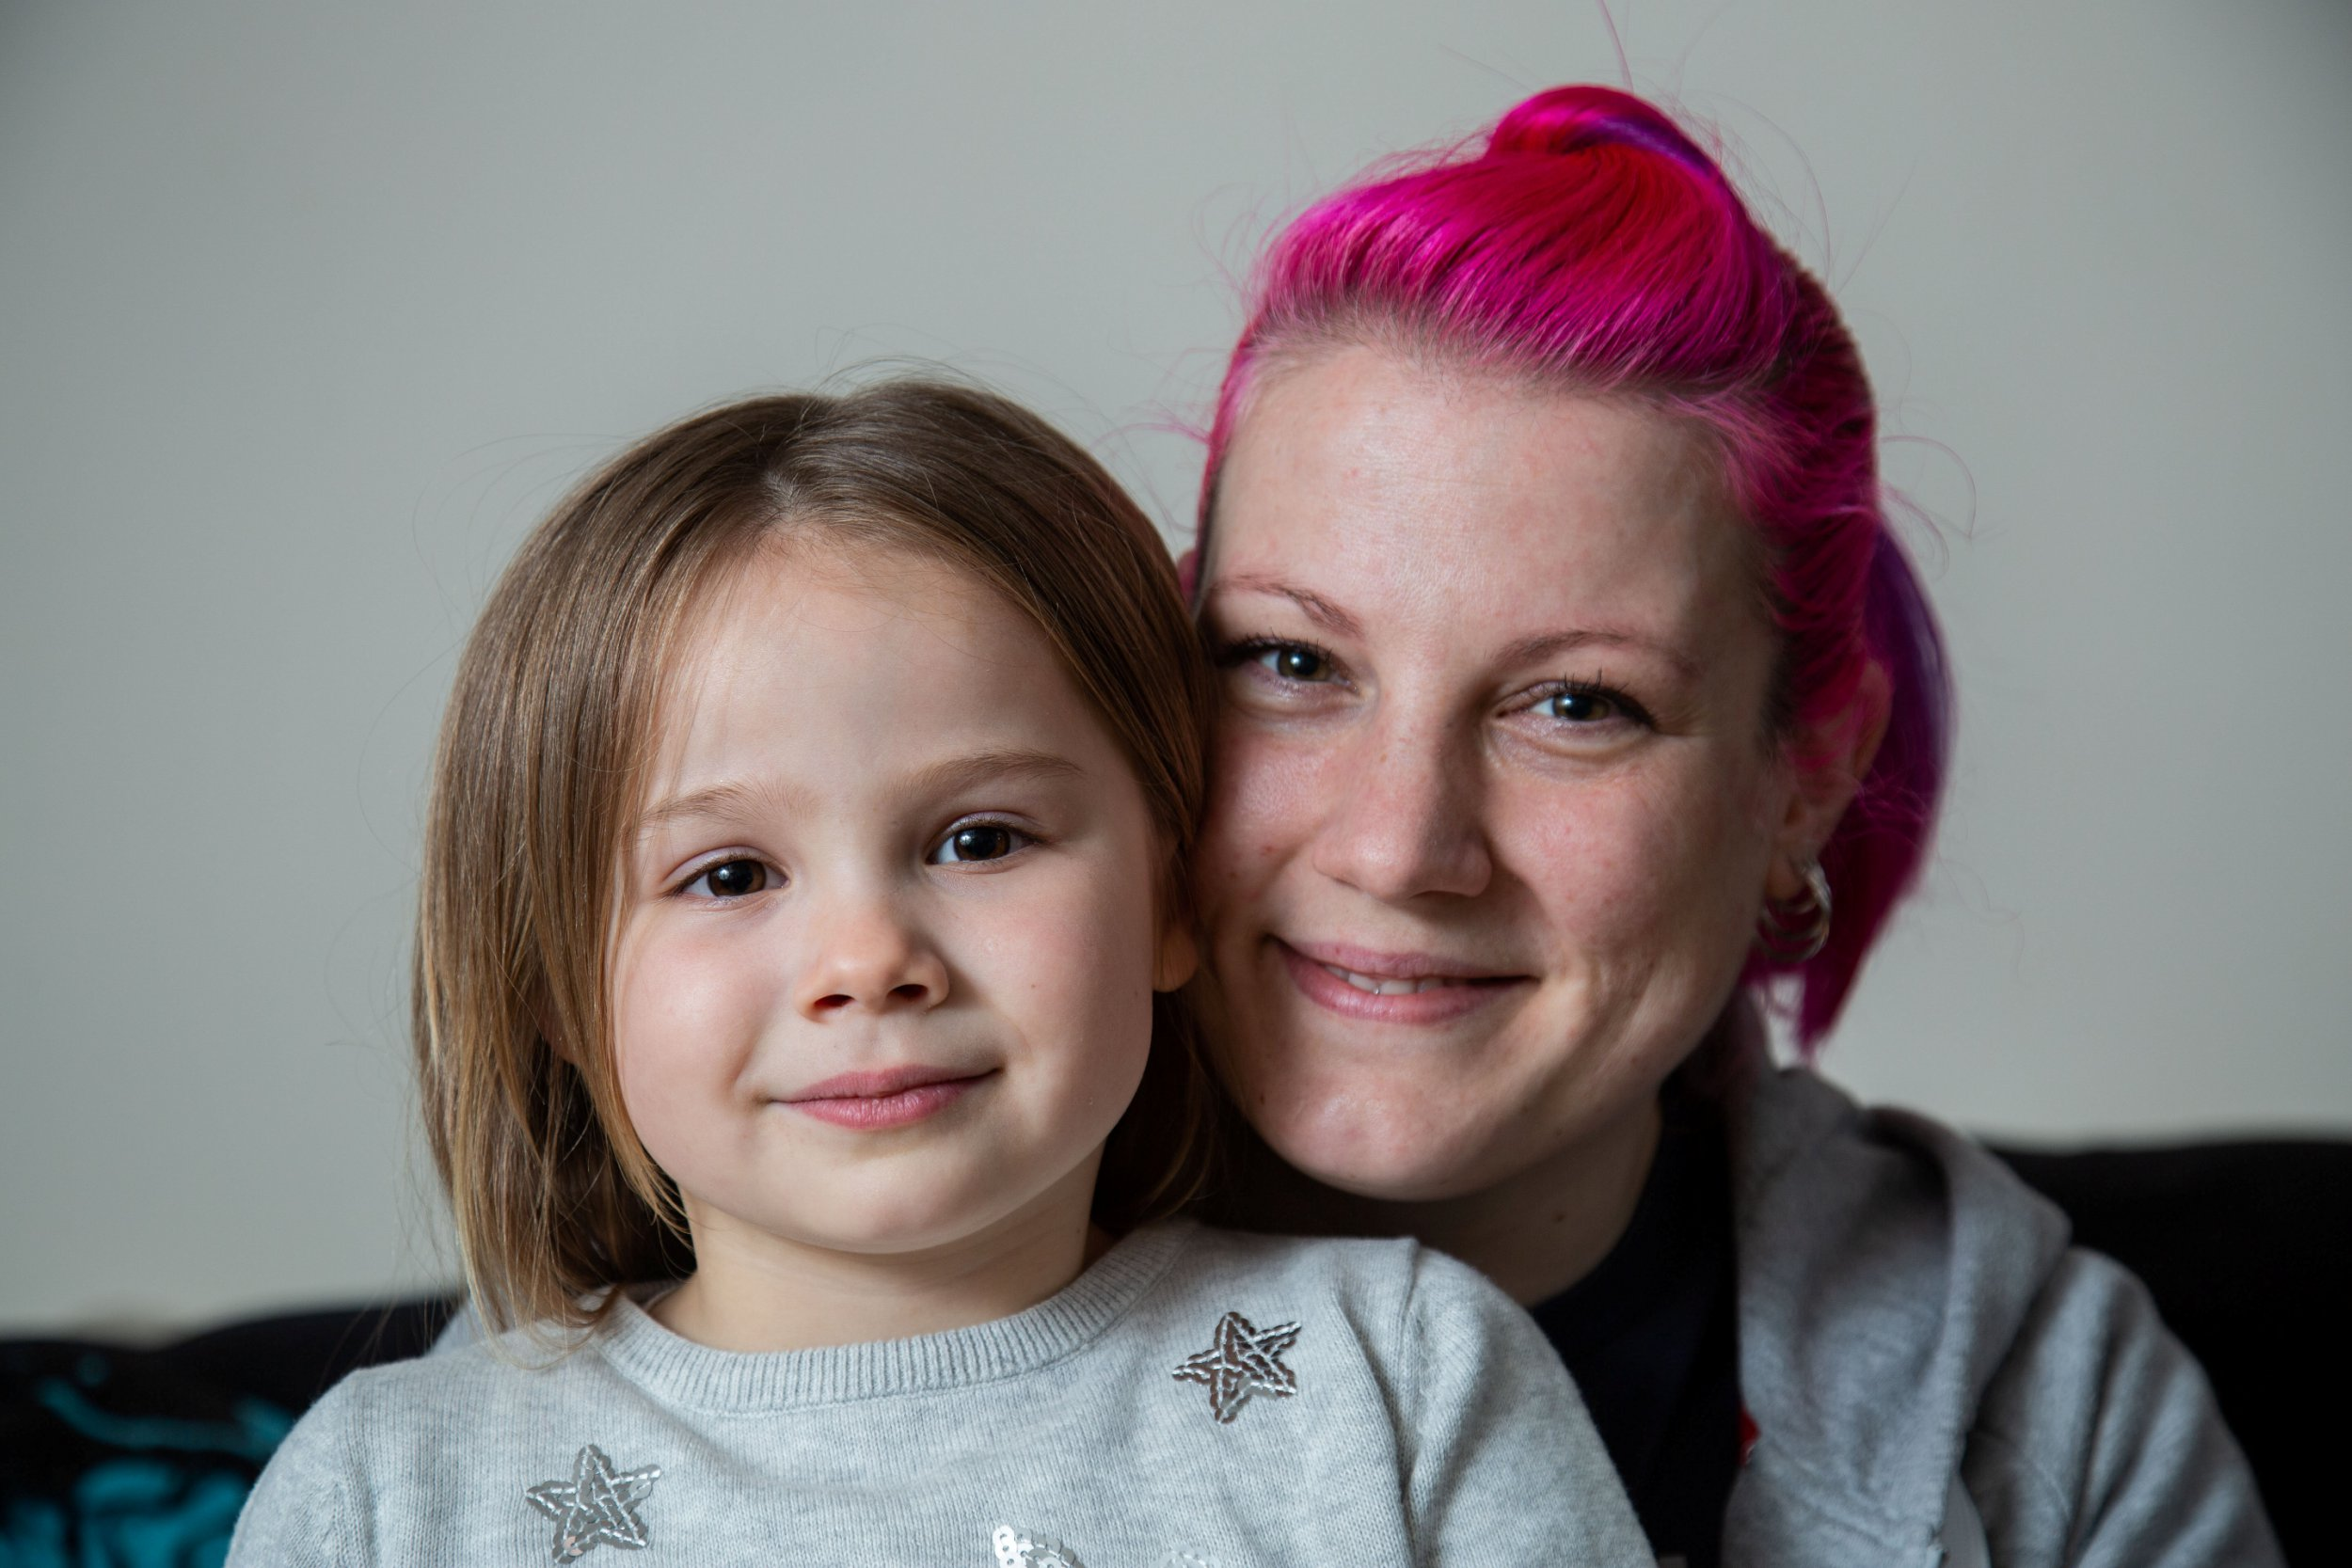 Valerie Hawkett with her daughter Teagan who were found by the police after a car crash using the What 3 Words website, which allocates three random words to a 3x3m grid location. Trowbridge, Wiltshire. See SWNS story SWBRwords. A mum and daughter have become the first people rescued by police using a new tool - that can track people anywhere in the world using three WORDS. Valerie Hawkett, 33, was lef disoriented when she lost control driving round a sharp bend and her car went flying over a hedge and landed on its side in a field. Her four-year-old daughter was in the back and Valerie tried to call the police to come to her aid - but was so shocked by the accident she didn't know where she was. Luckily, police were able to find their way to Valerie in the field - after texting her the link to a website called What 3 Words. It opens on any device and is able to find the exact position of any location on Earth -using just three words. The geocoding system has divided the planet into 57 trillion 3-metre by 3-metre squares, assigning each square a random three-word 'address'. It told her the three word grid she was in - 'weekend foggy earphones' - which directed police to a road near a field on the A36 heading out of Norton St Philip, Somerset.